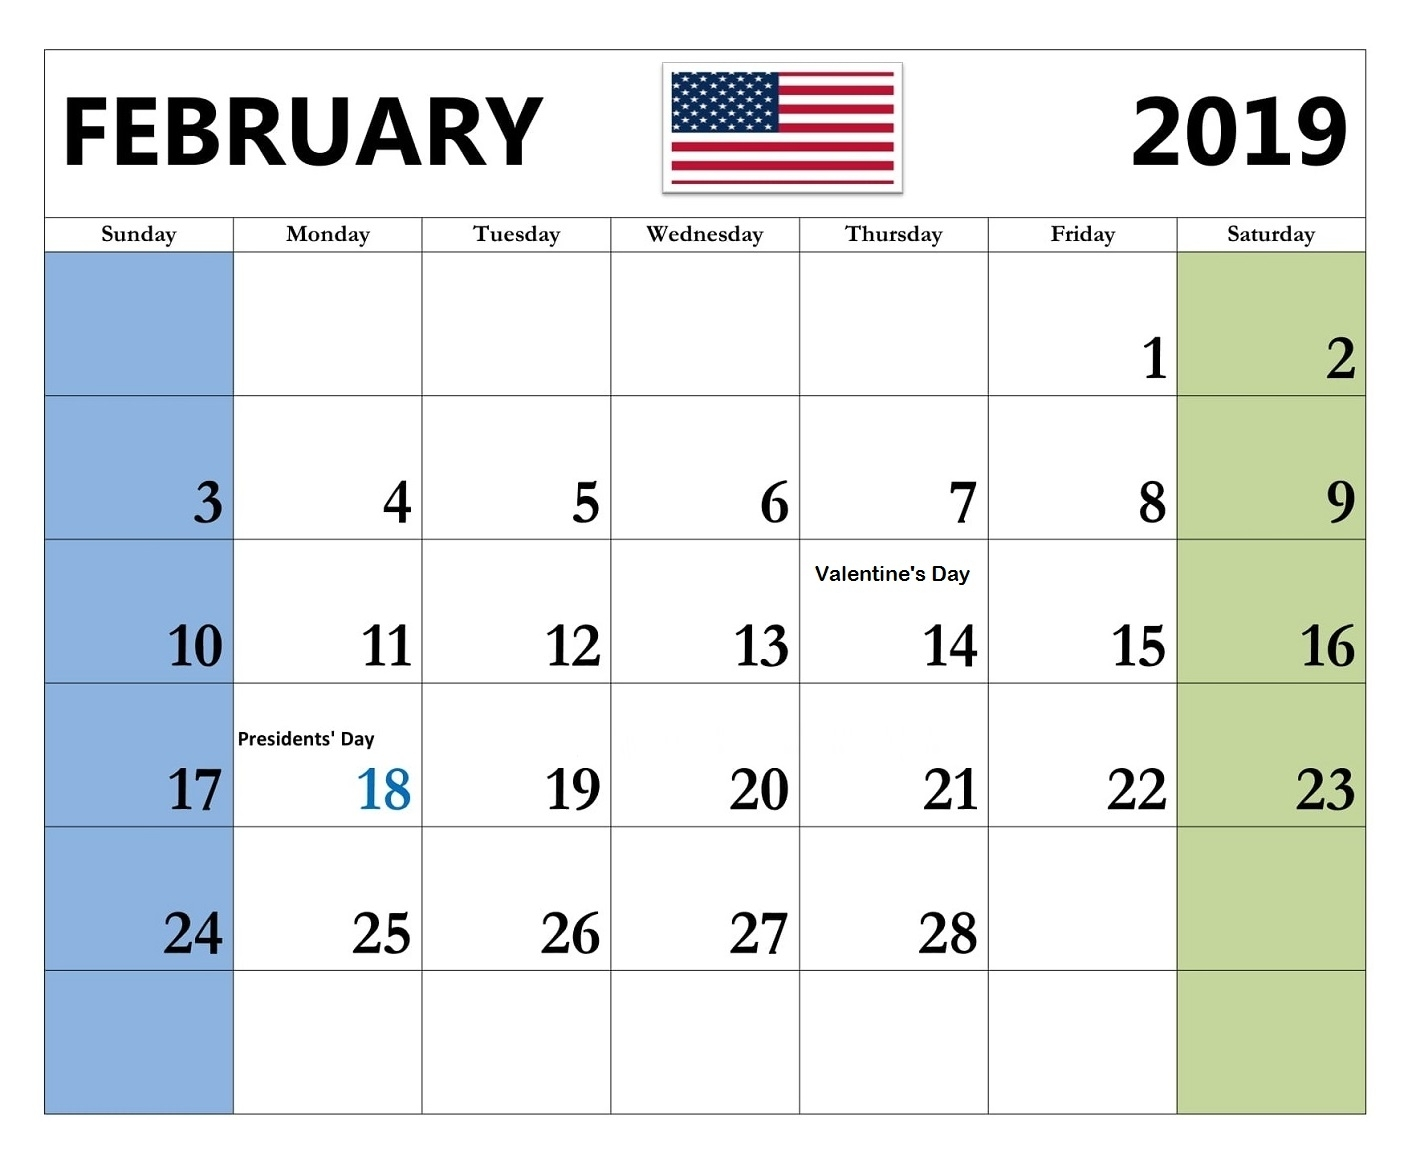 February 2019 Calendar USA With Holidays